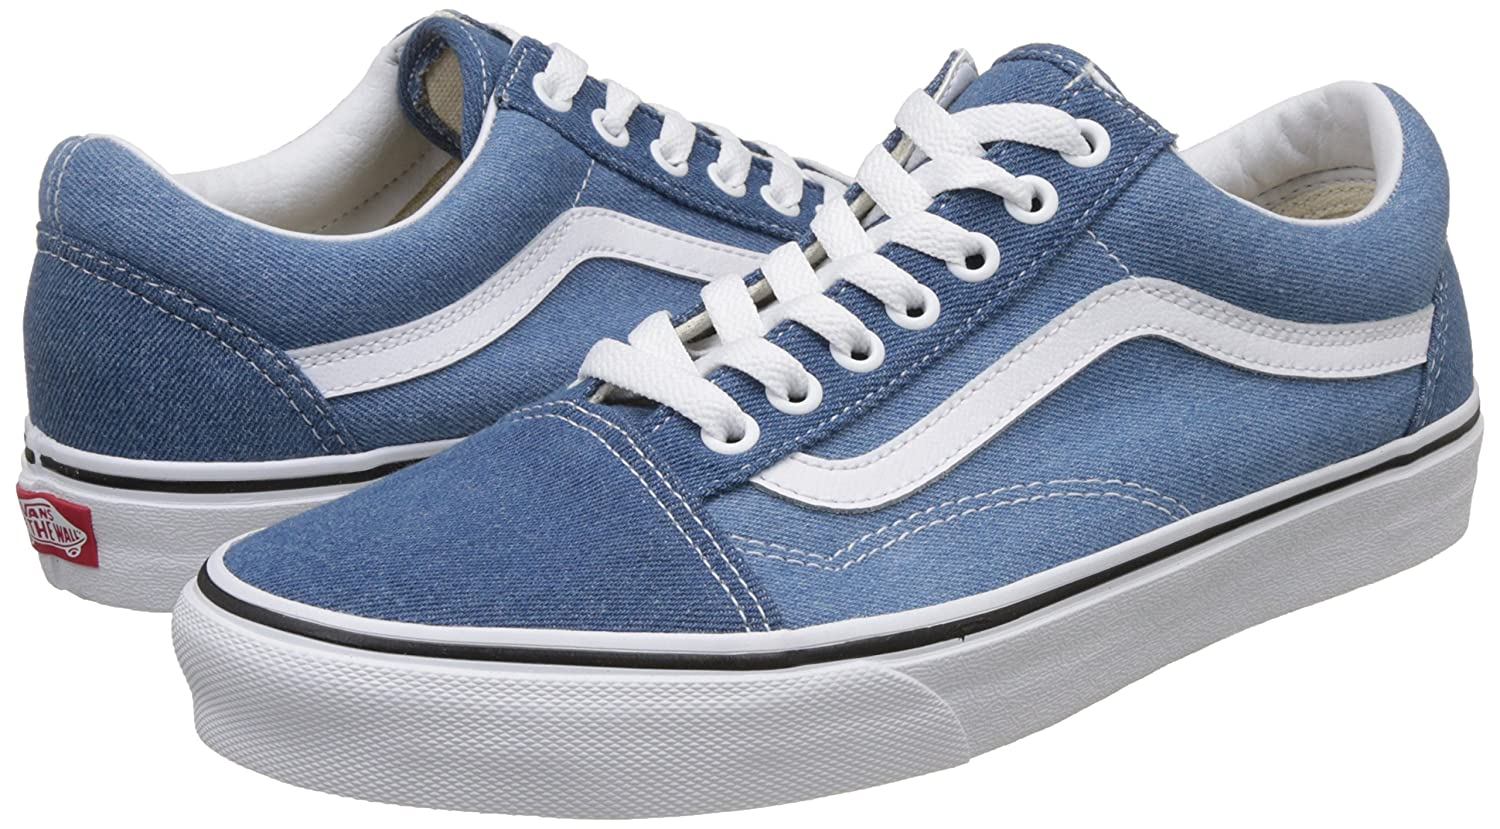 Vans Unisex Old Skool 13 Classic Skate Shoes B076CV4S7L 13 Skool M US Women / 11.5 M US Men|Denim 2 Tone Blue True White 93cd24